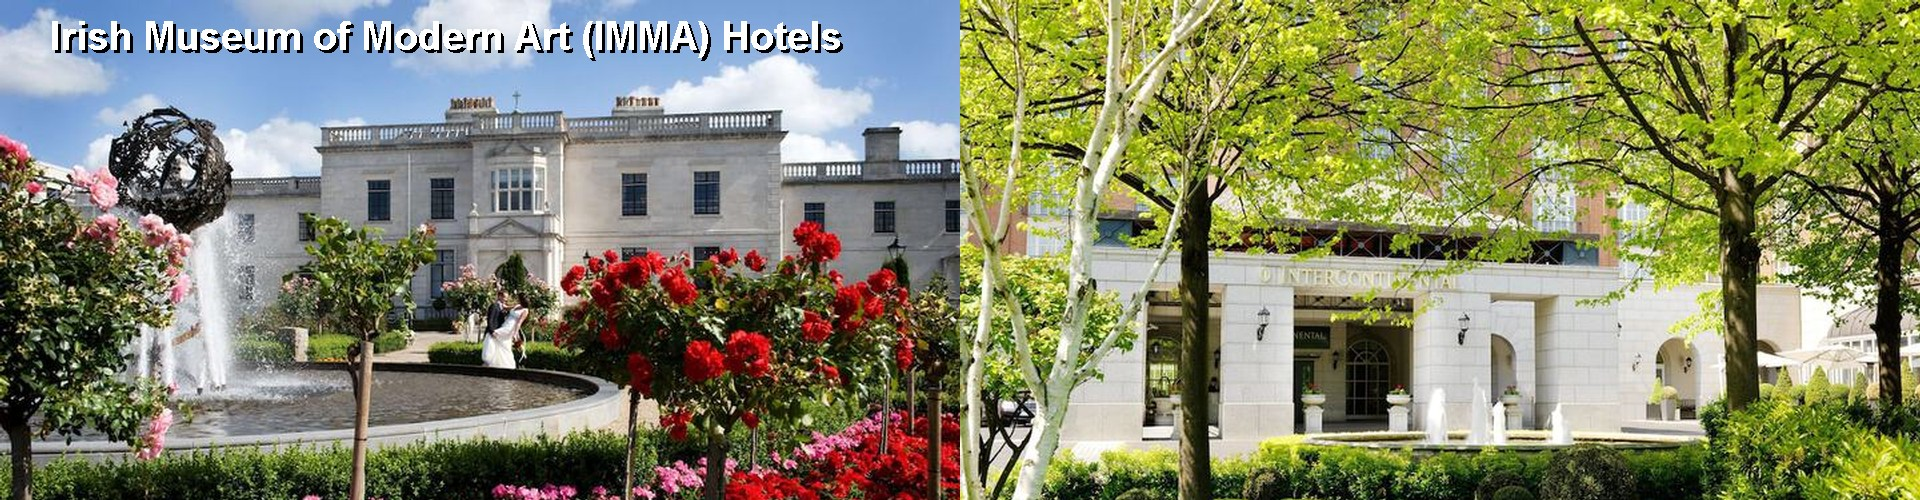 5 Best Hotels near Irish Museum of Modern Art (IMMA)